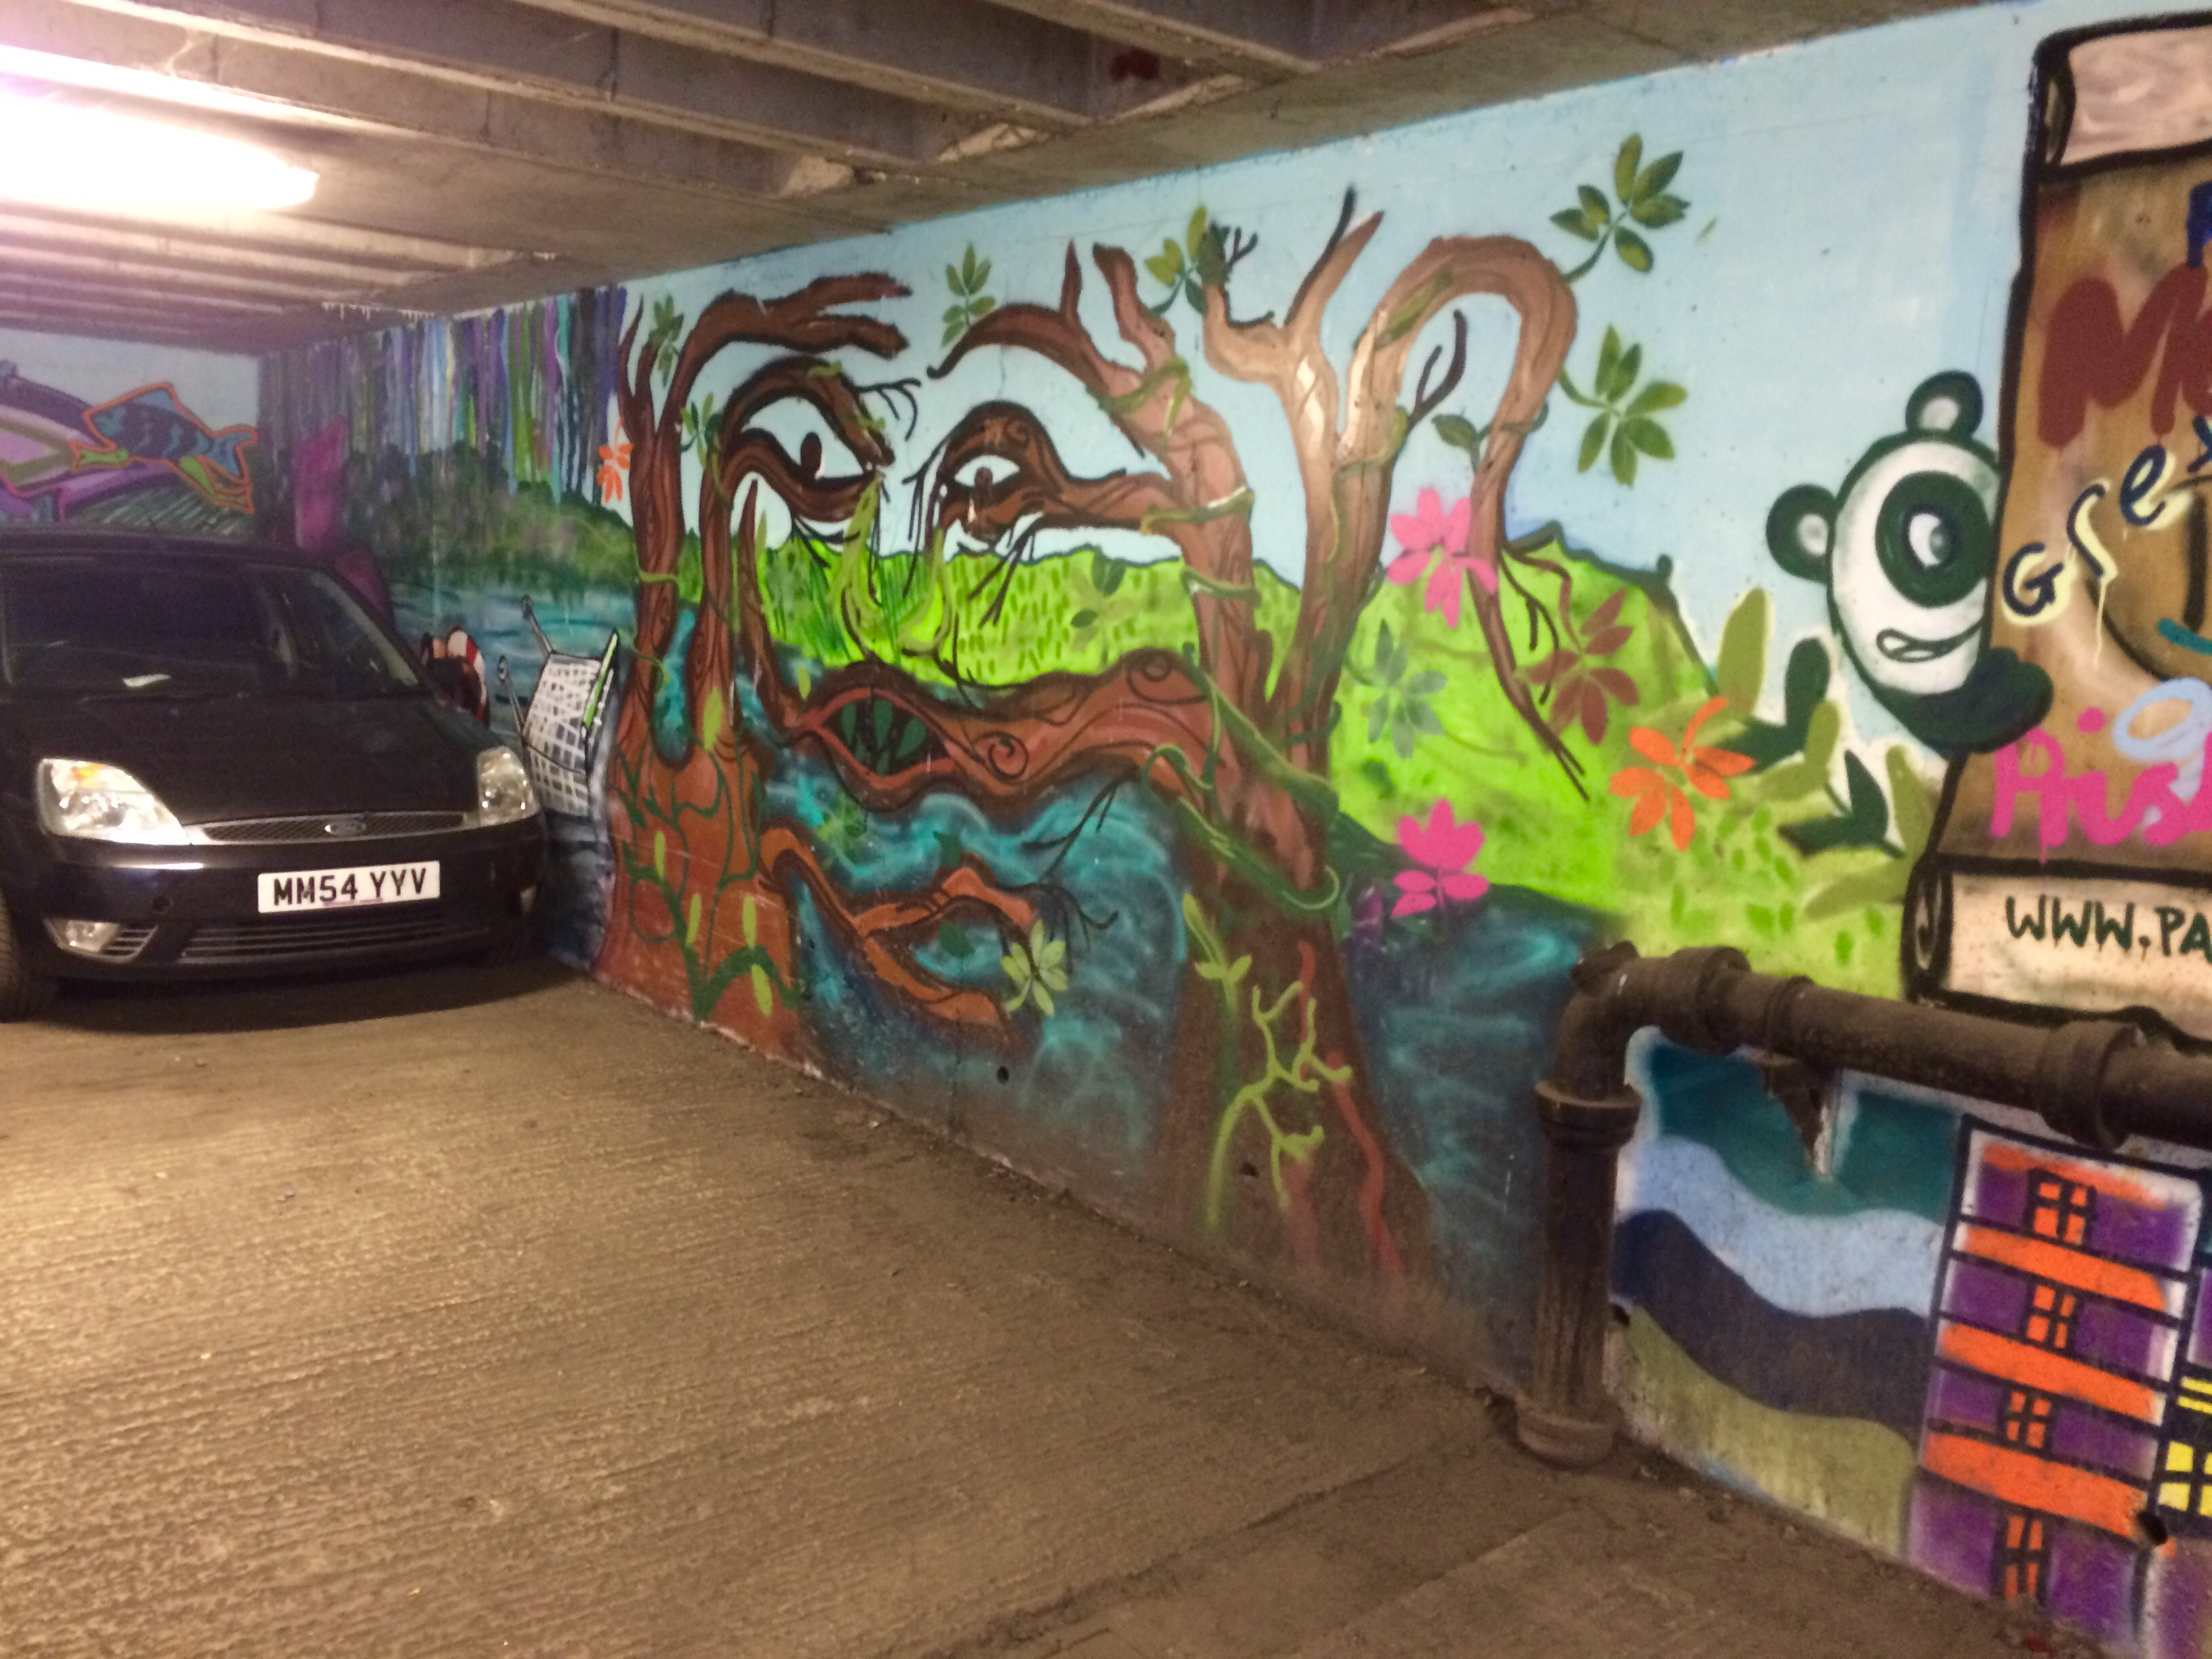 Graffiti Brentford in the Watermans Car Park Brentford. Copyright Chris Bushe 2015